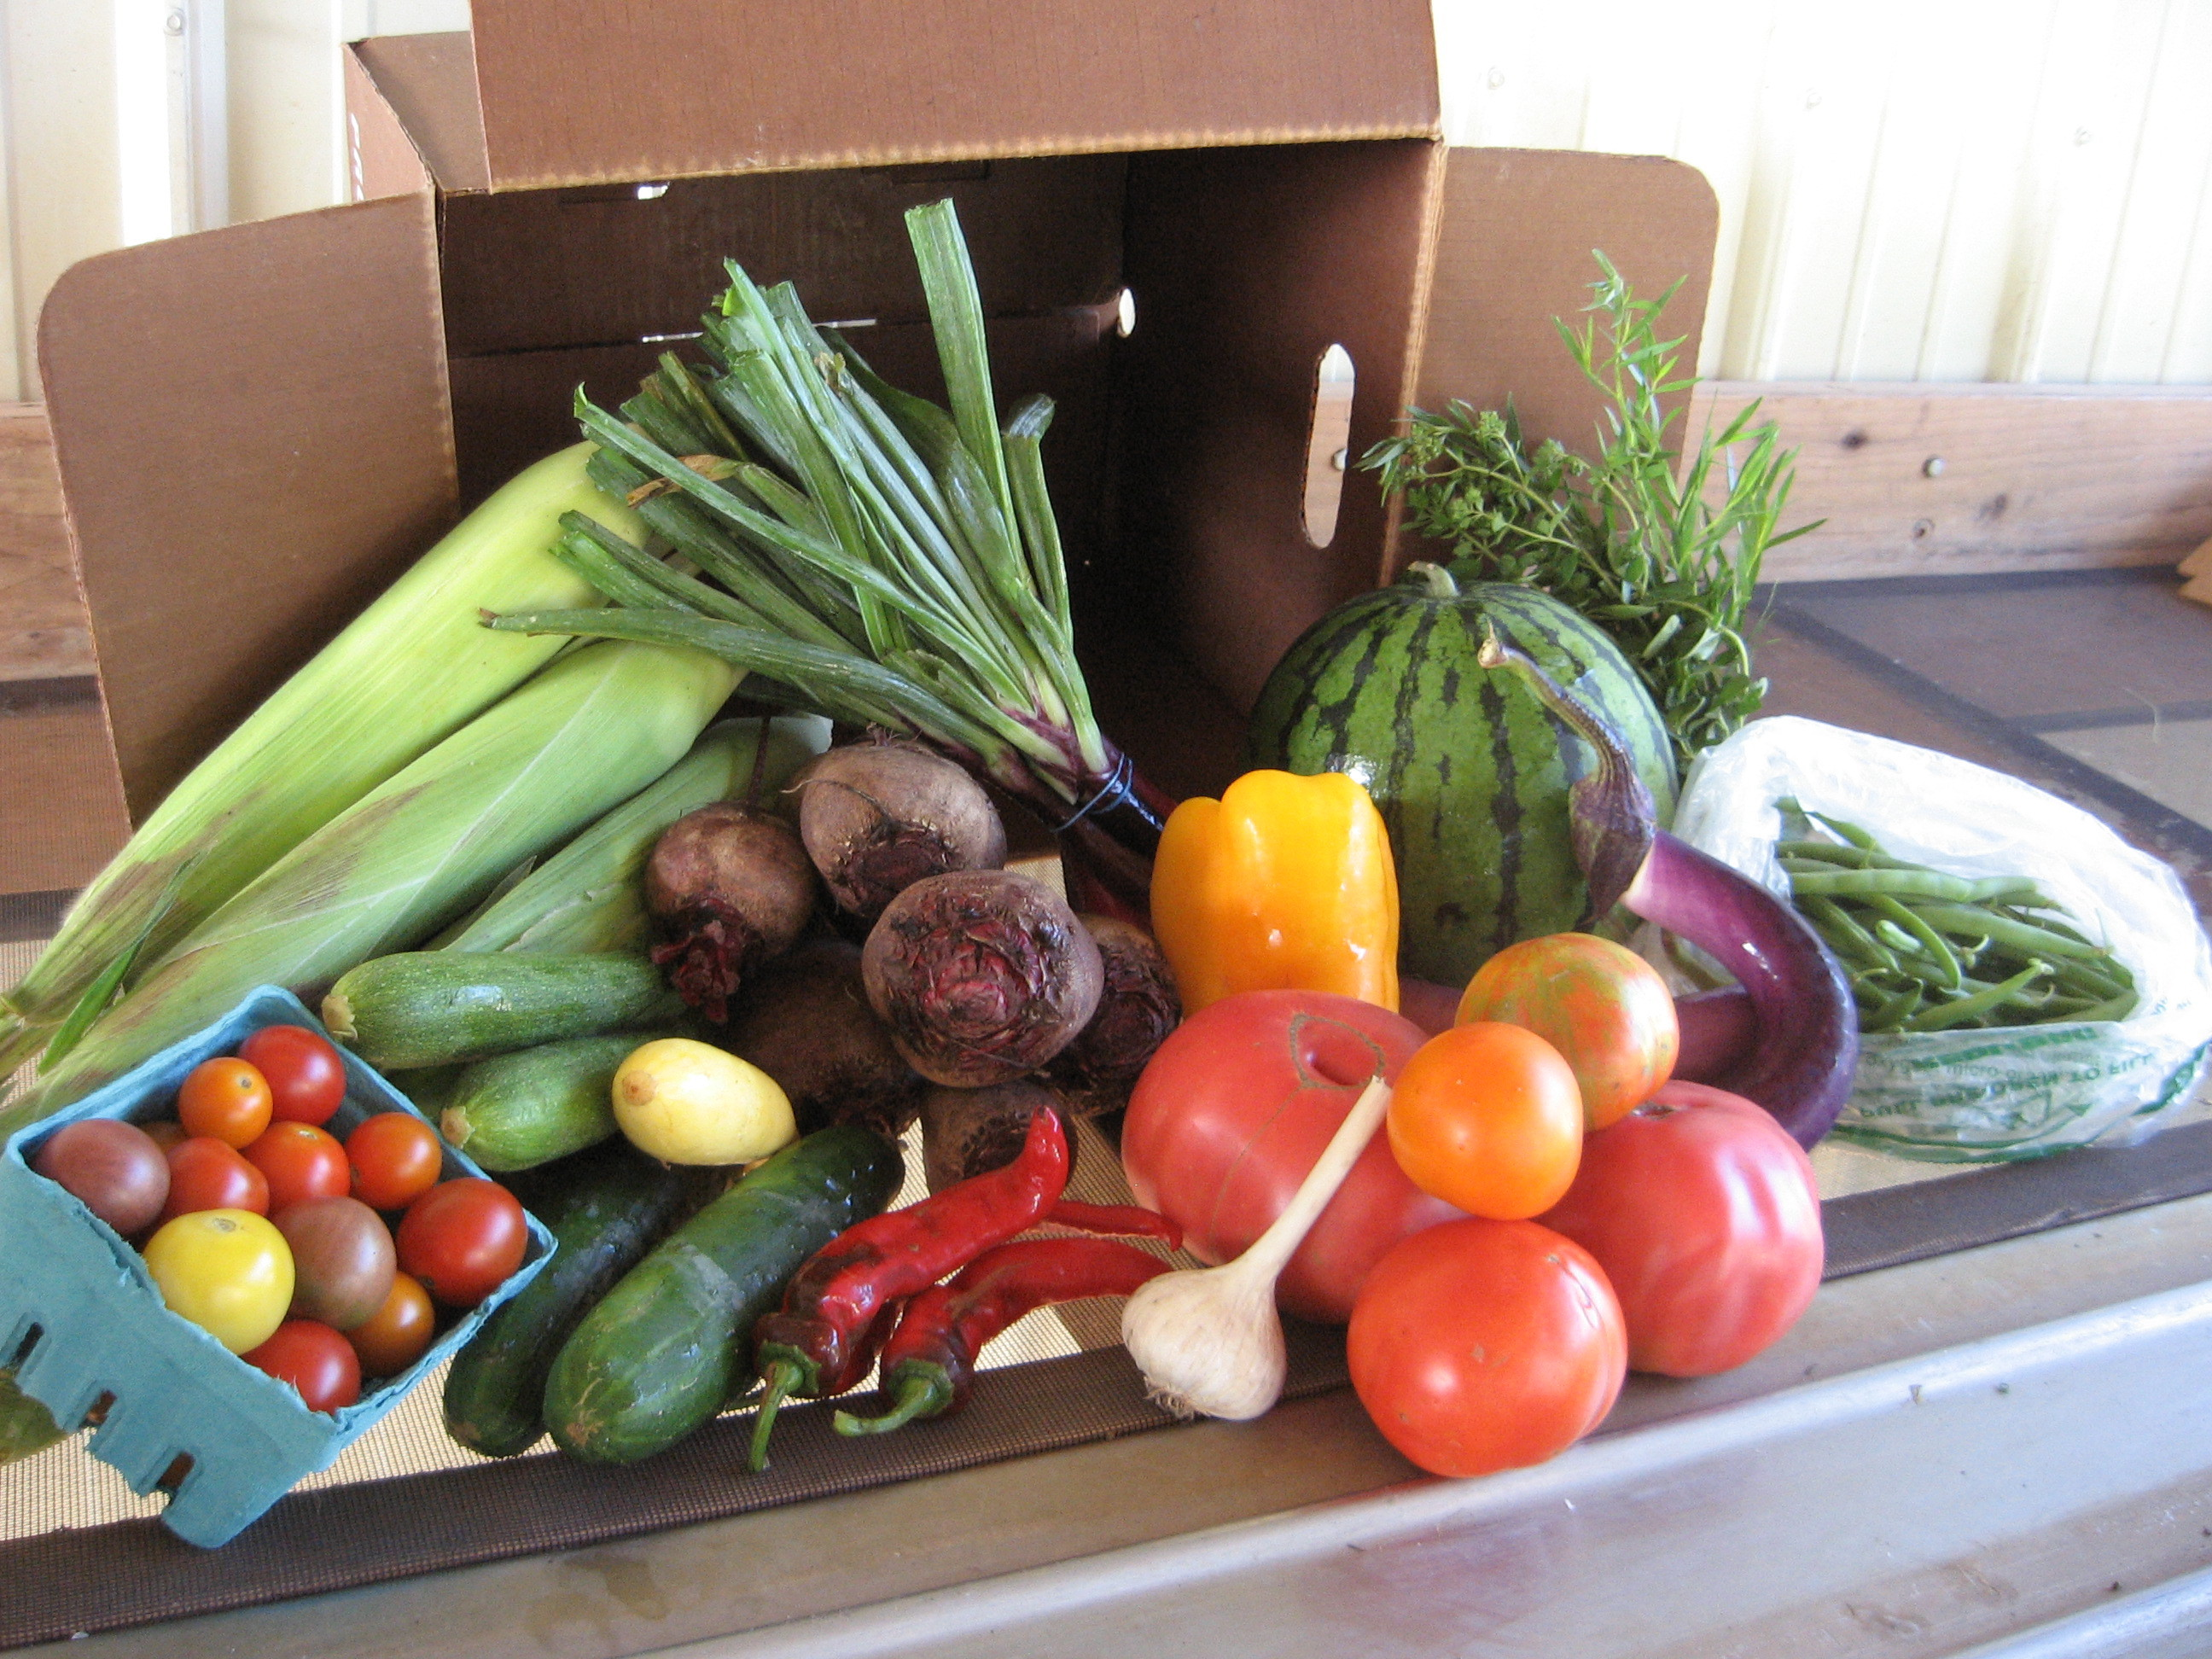 Weekly CSA box - photo by Loon Organics